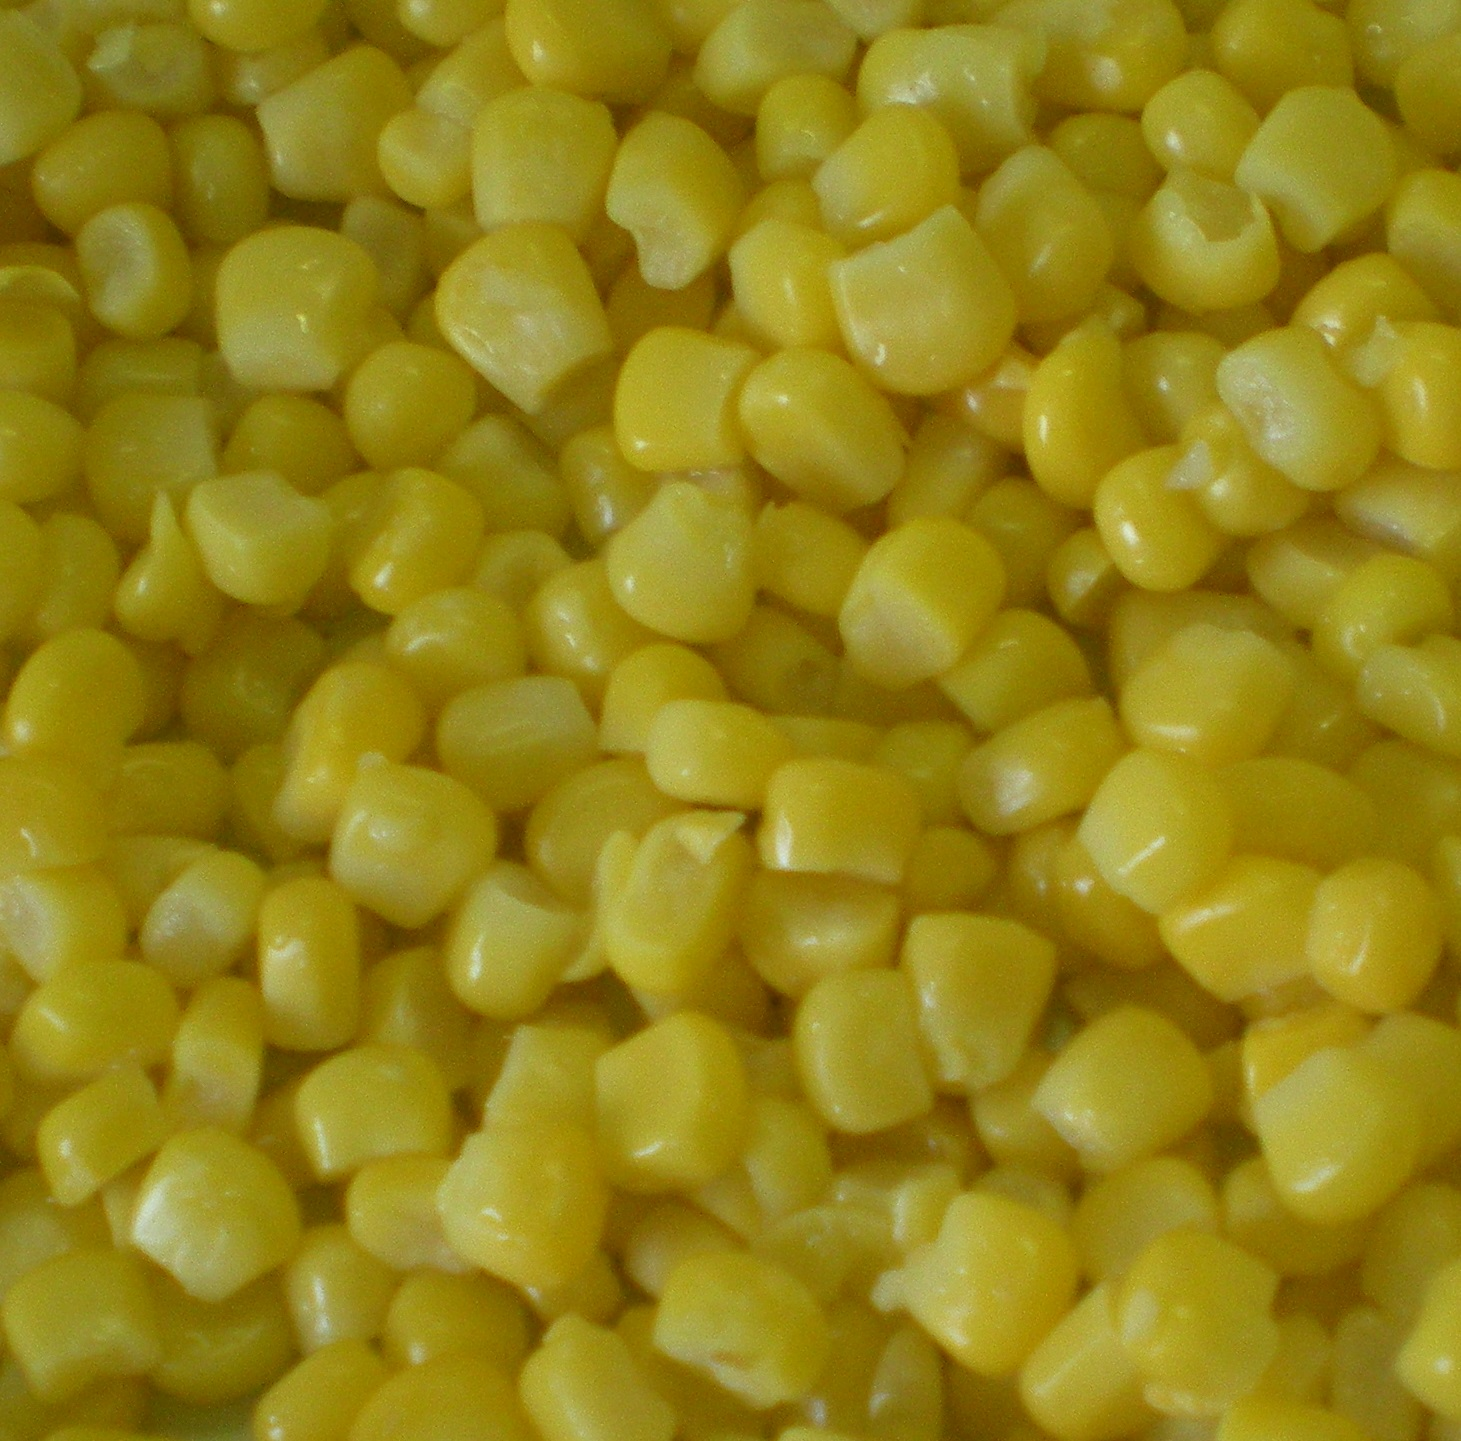 Wholesale frozen corn kernels - Garden Fresh by Kühne & Heitz